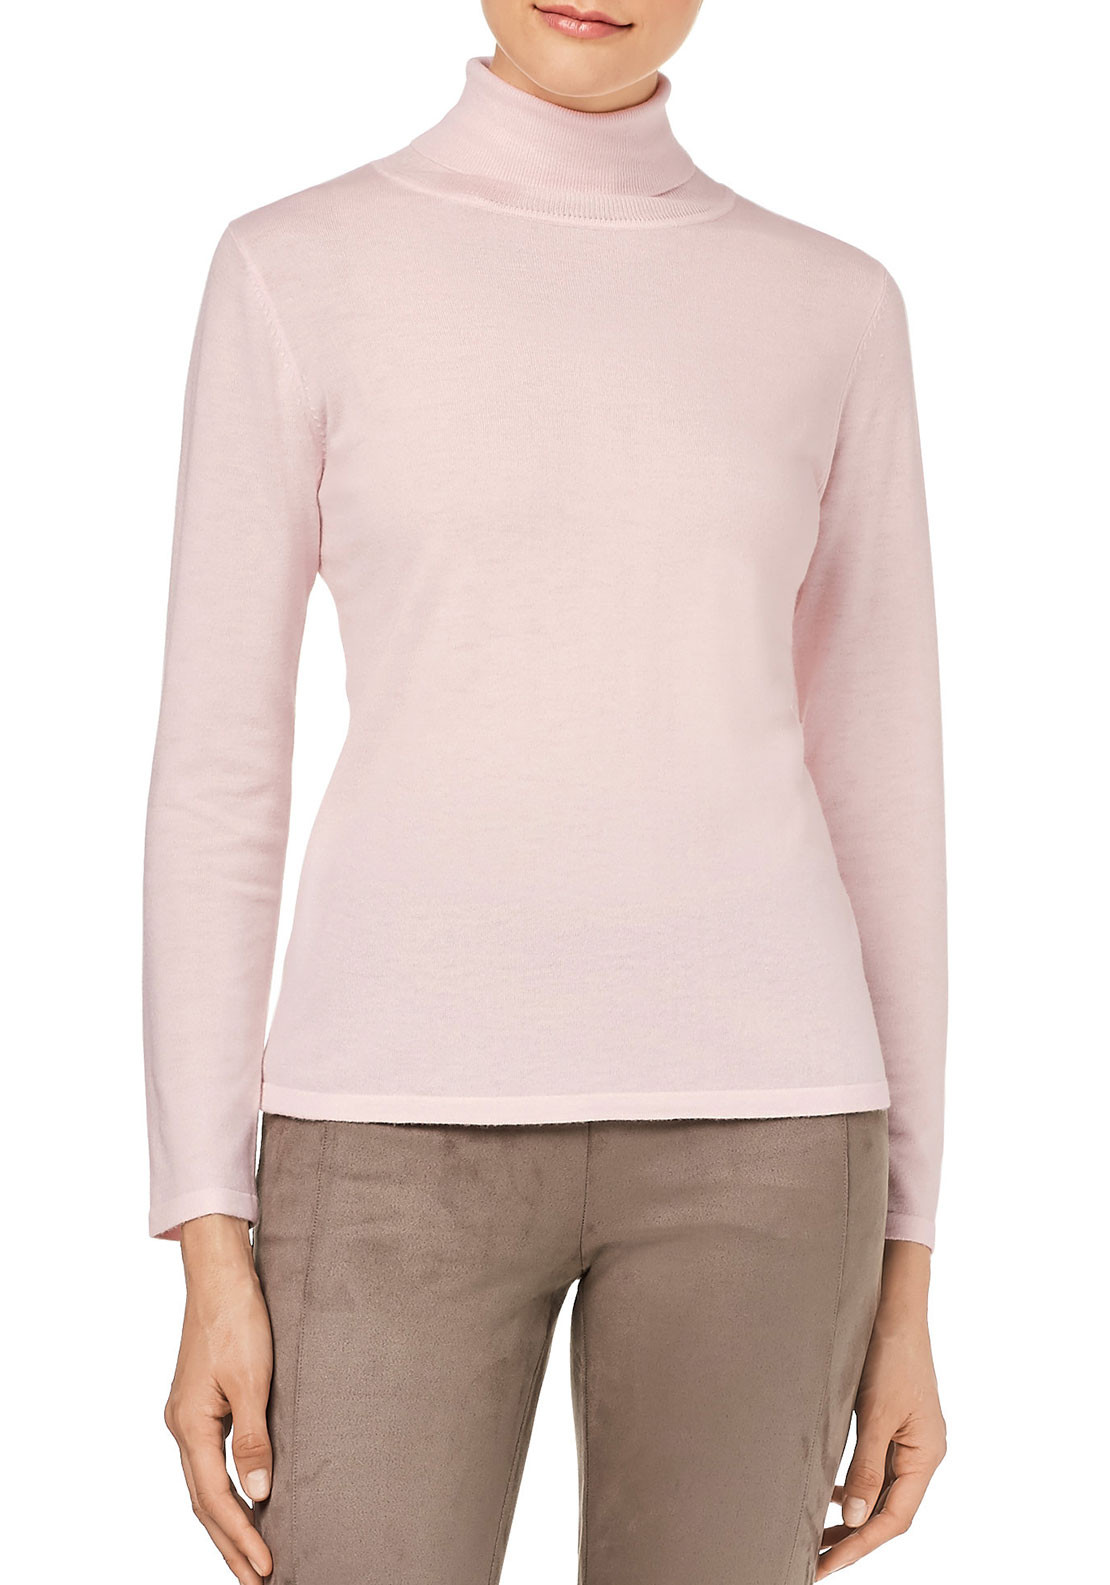 Gerry Weber Polo Neck Sweater, Pale Pink